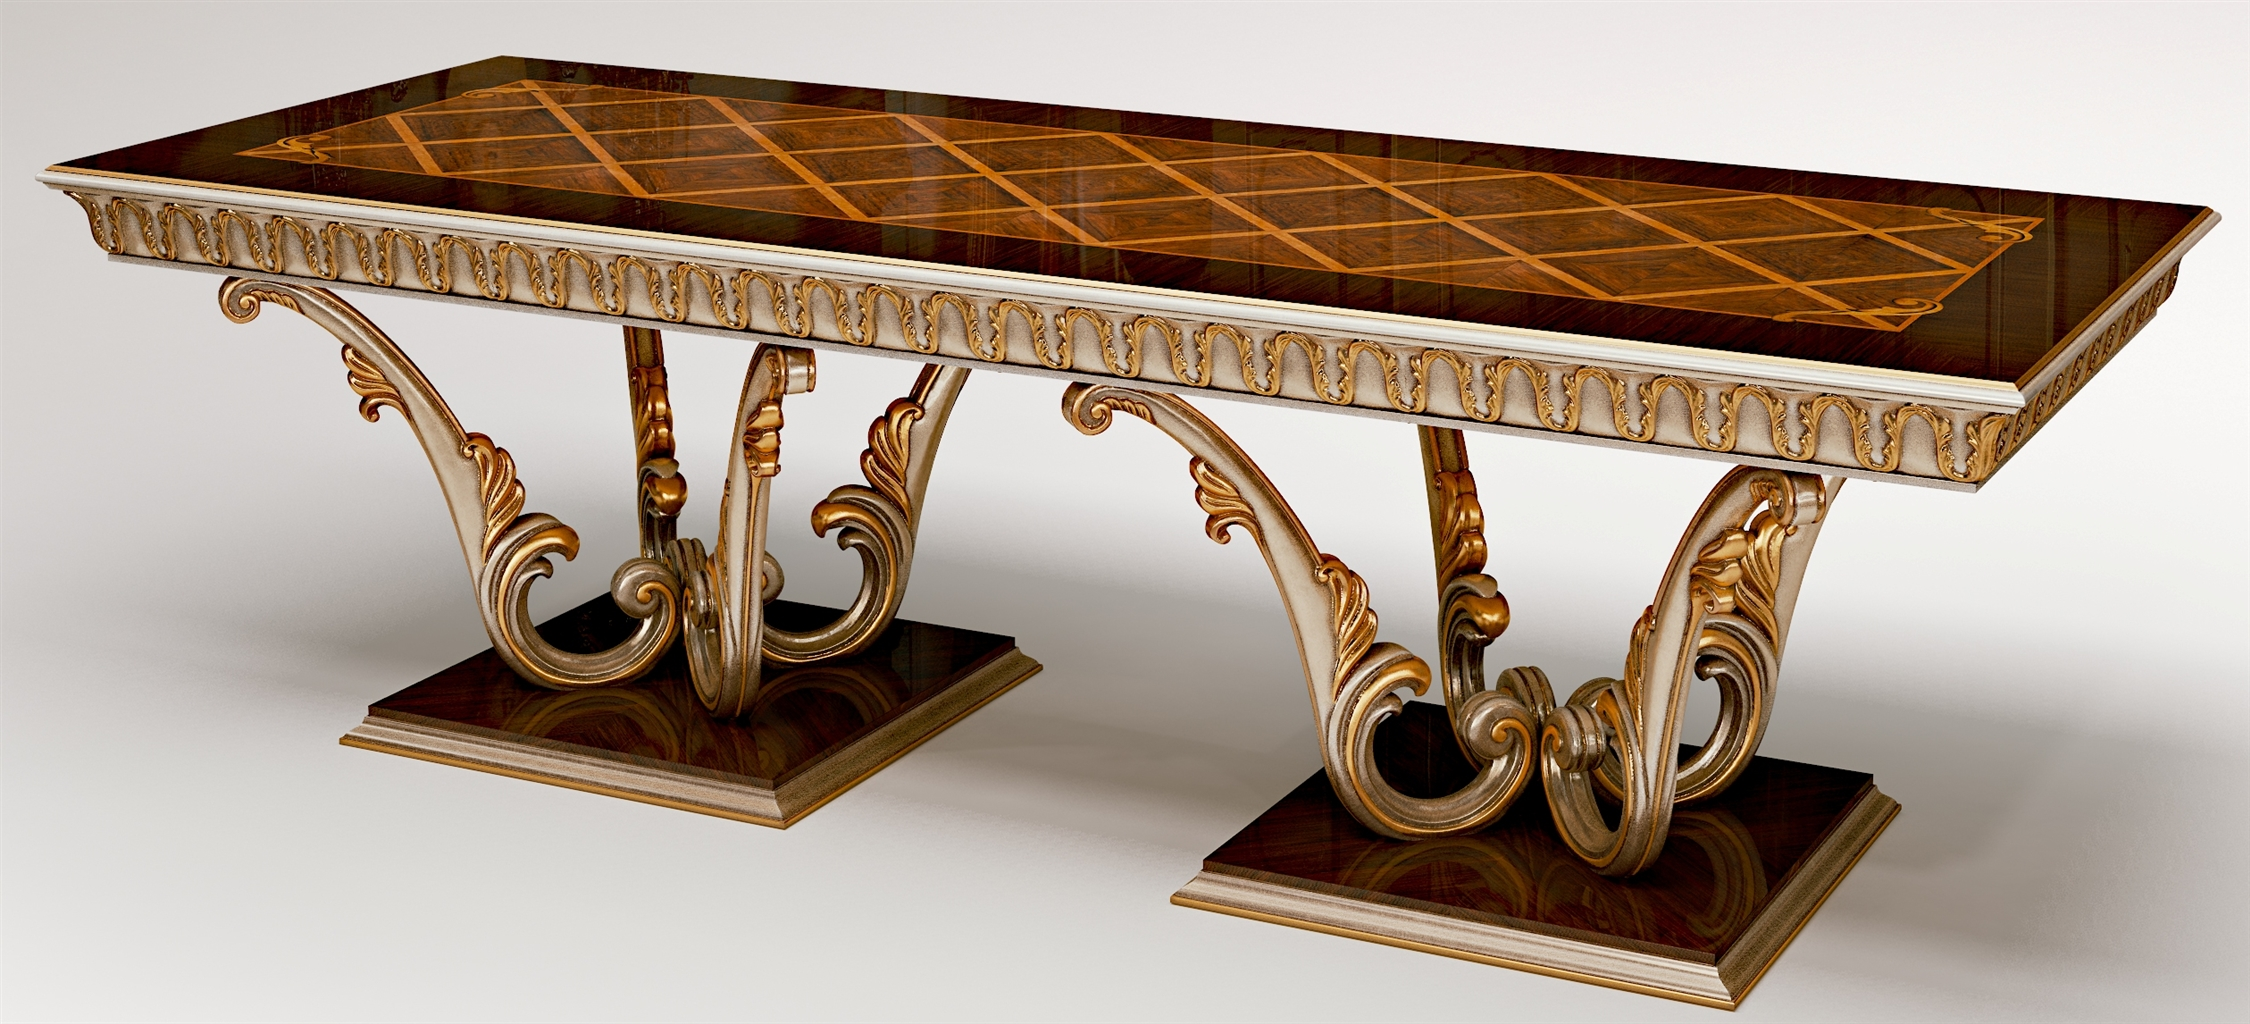 1 luxury dining furniture and furnishings 227 for Luxury dining table